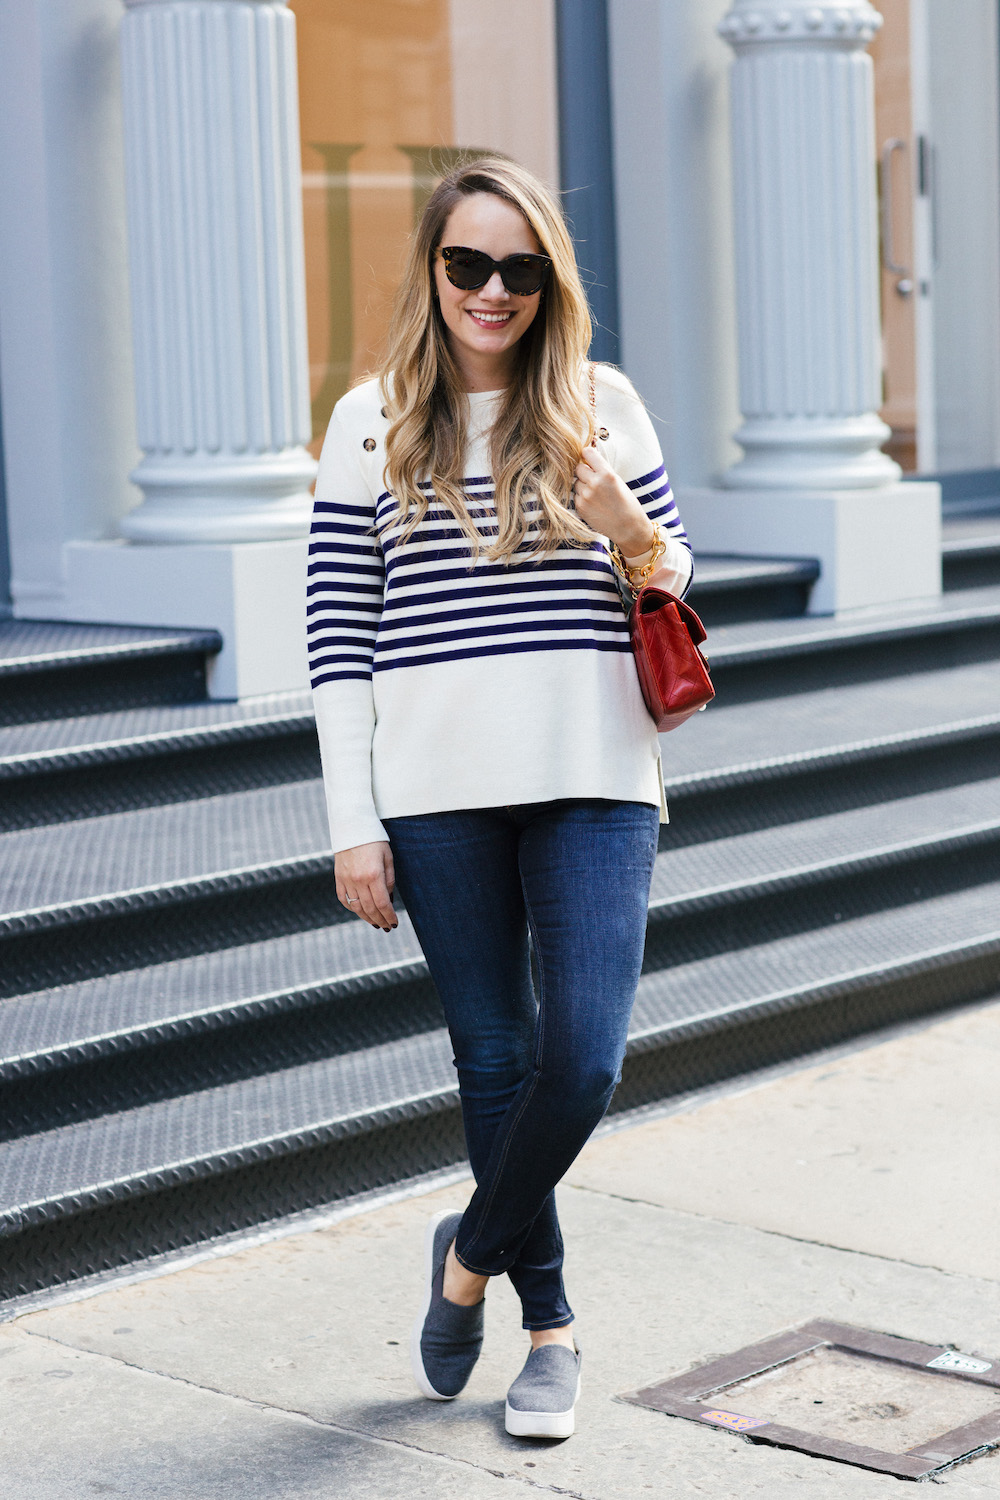 Vineyard Vines Striped Sweater - Grace Atwood, The Stripe